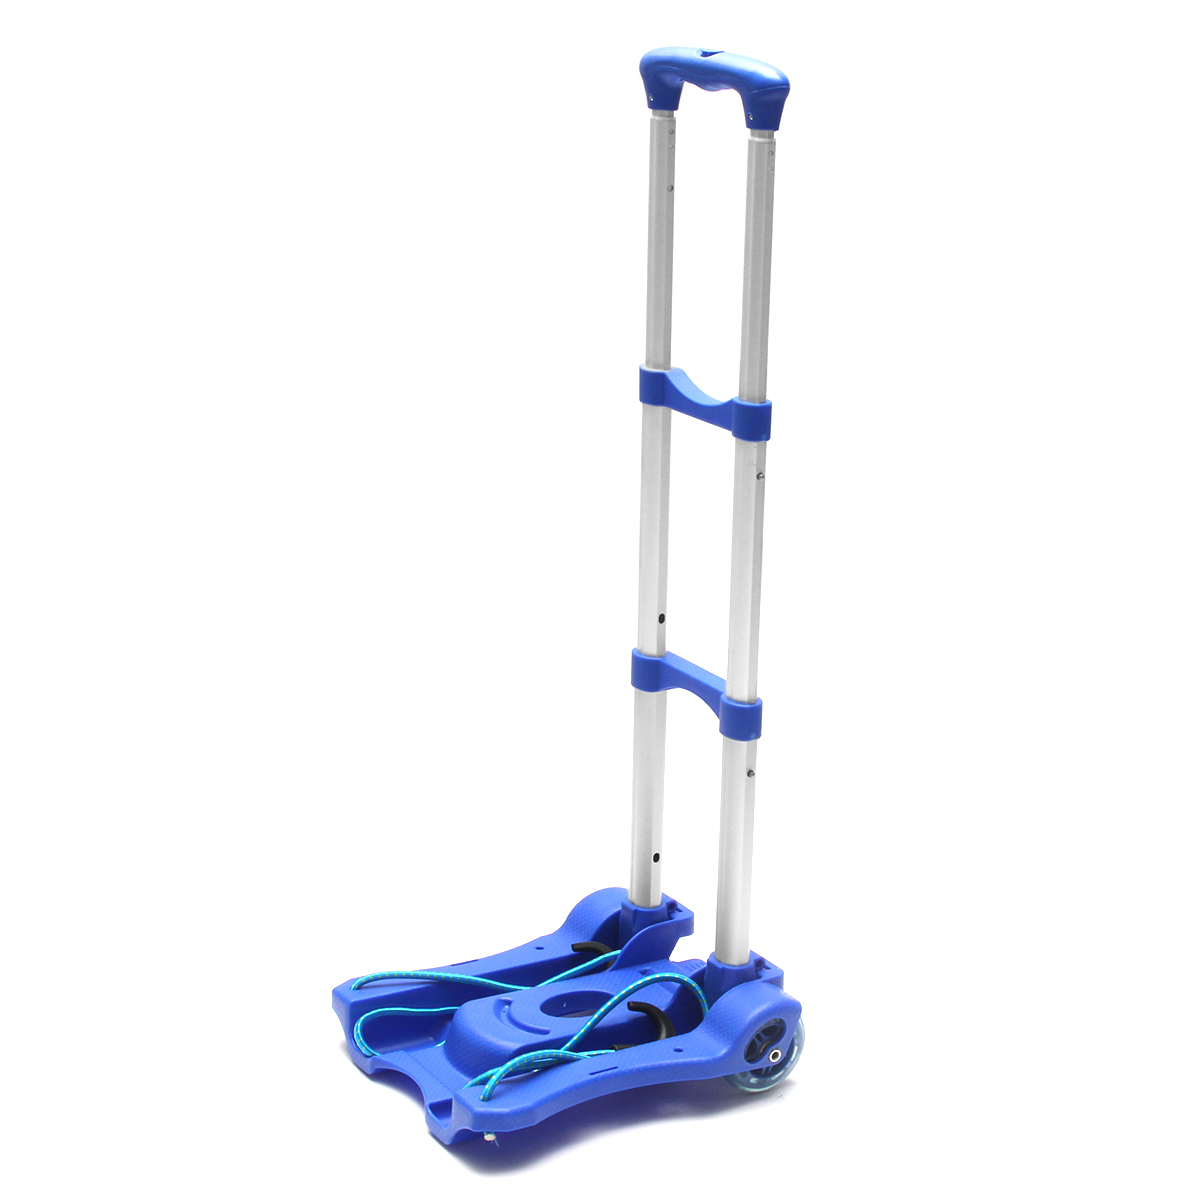 Folding Hand Truck Foldable Aluminum Luggage Carrier Dolly Push Cart Collapsible 2 Wheel